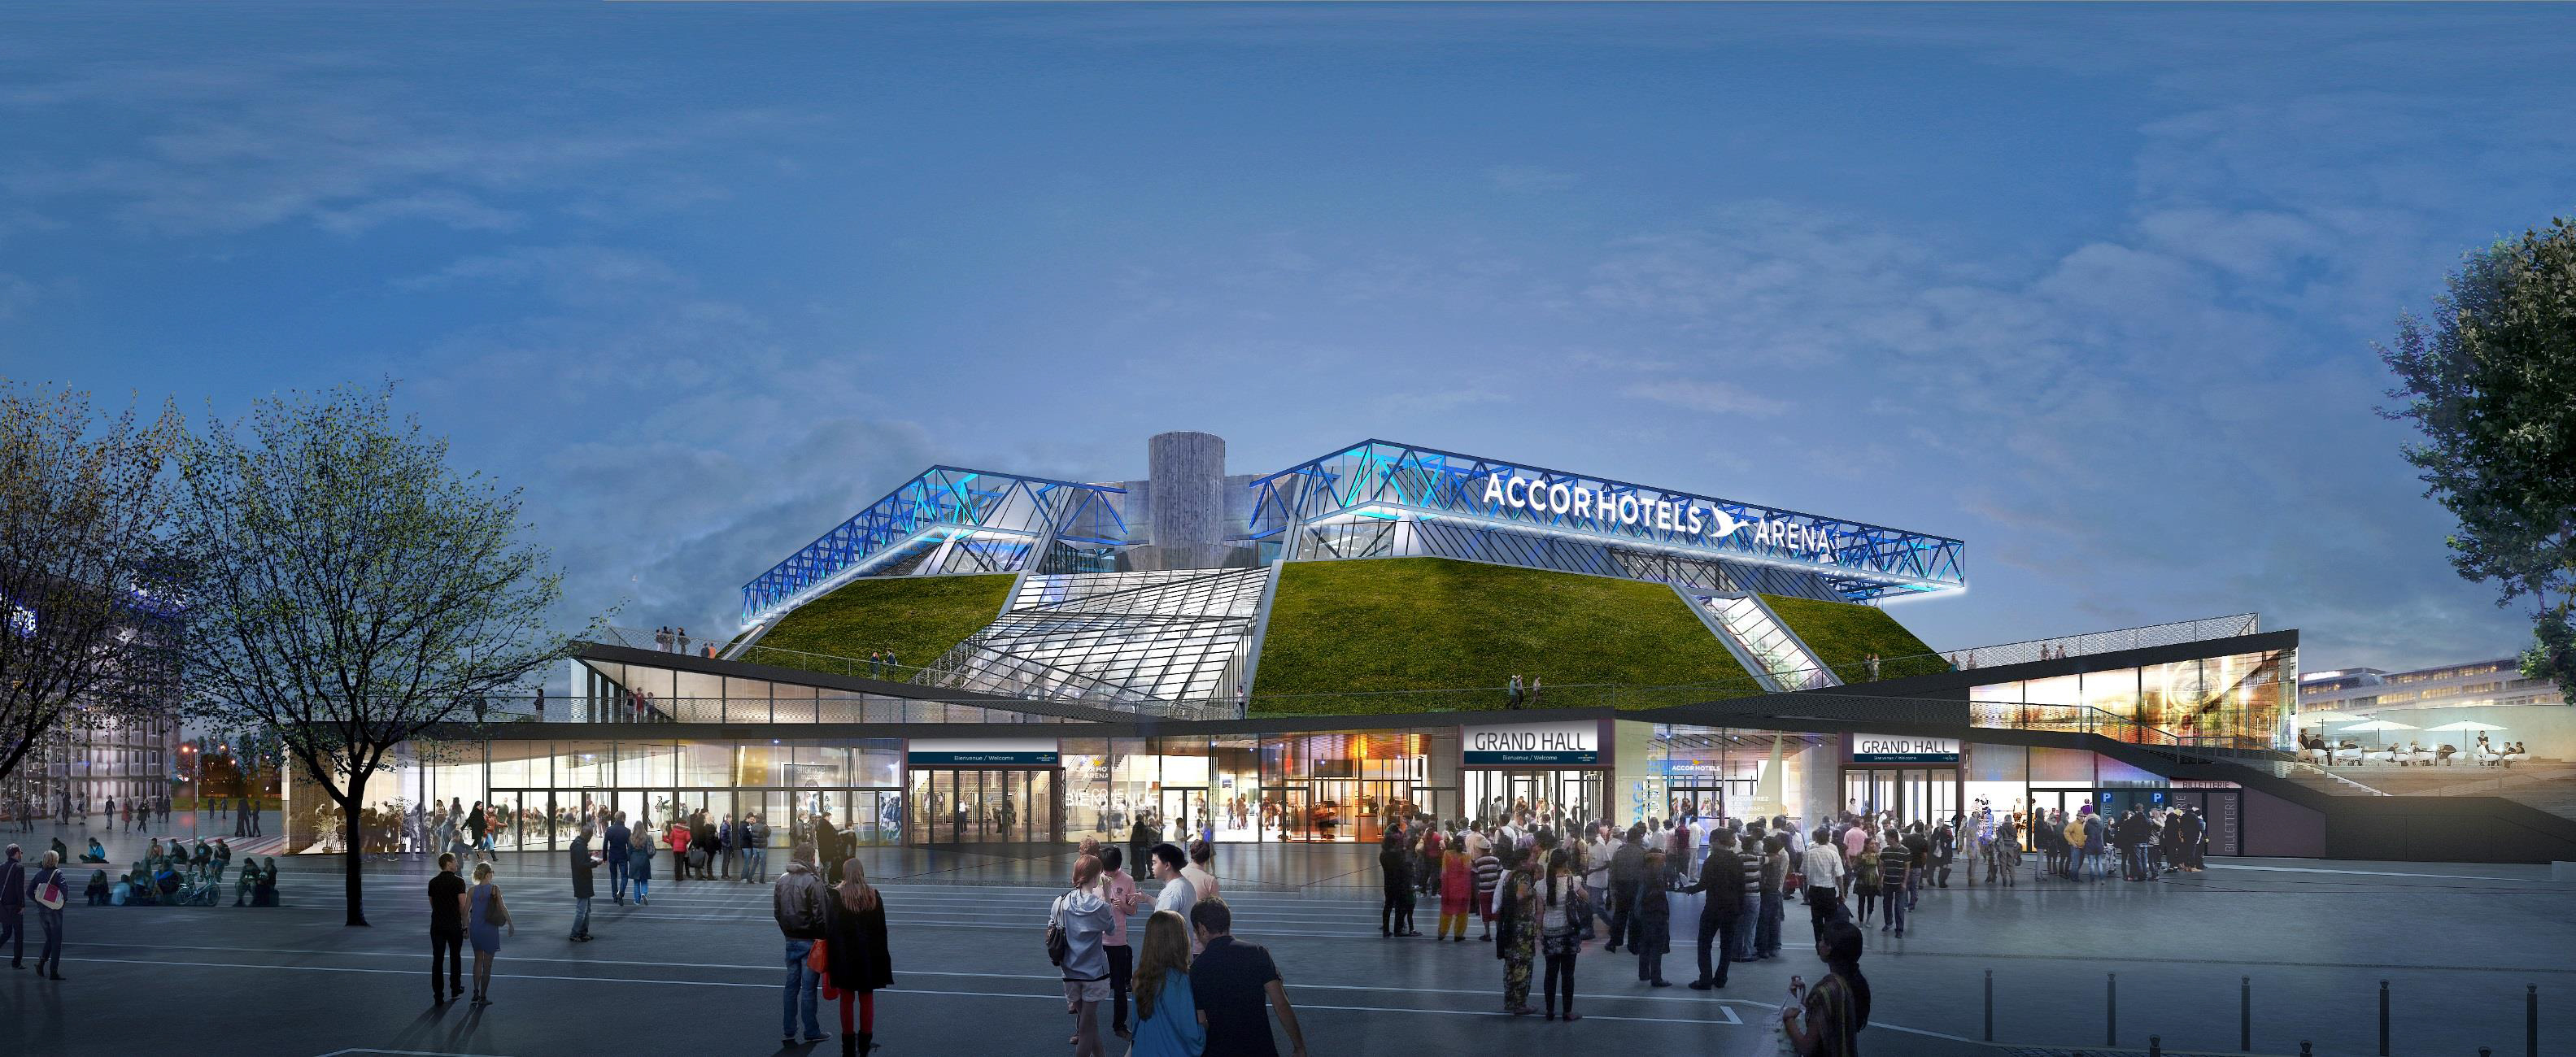 Accorhotels Signs 10 Year Naming Rights Agreement For The Bercy